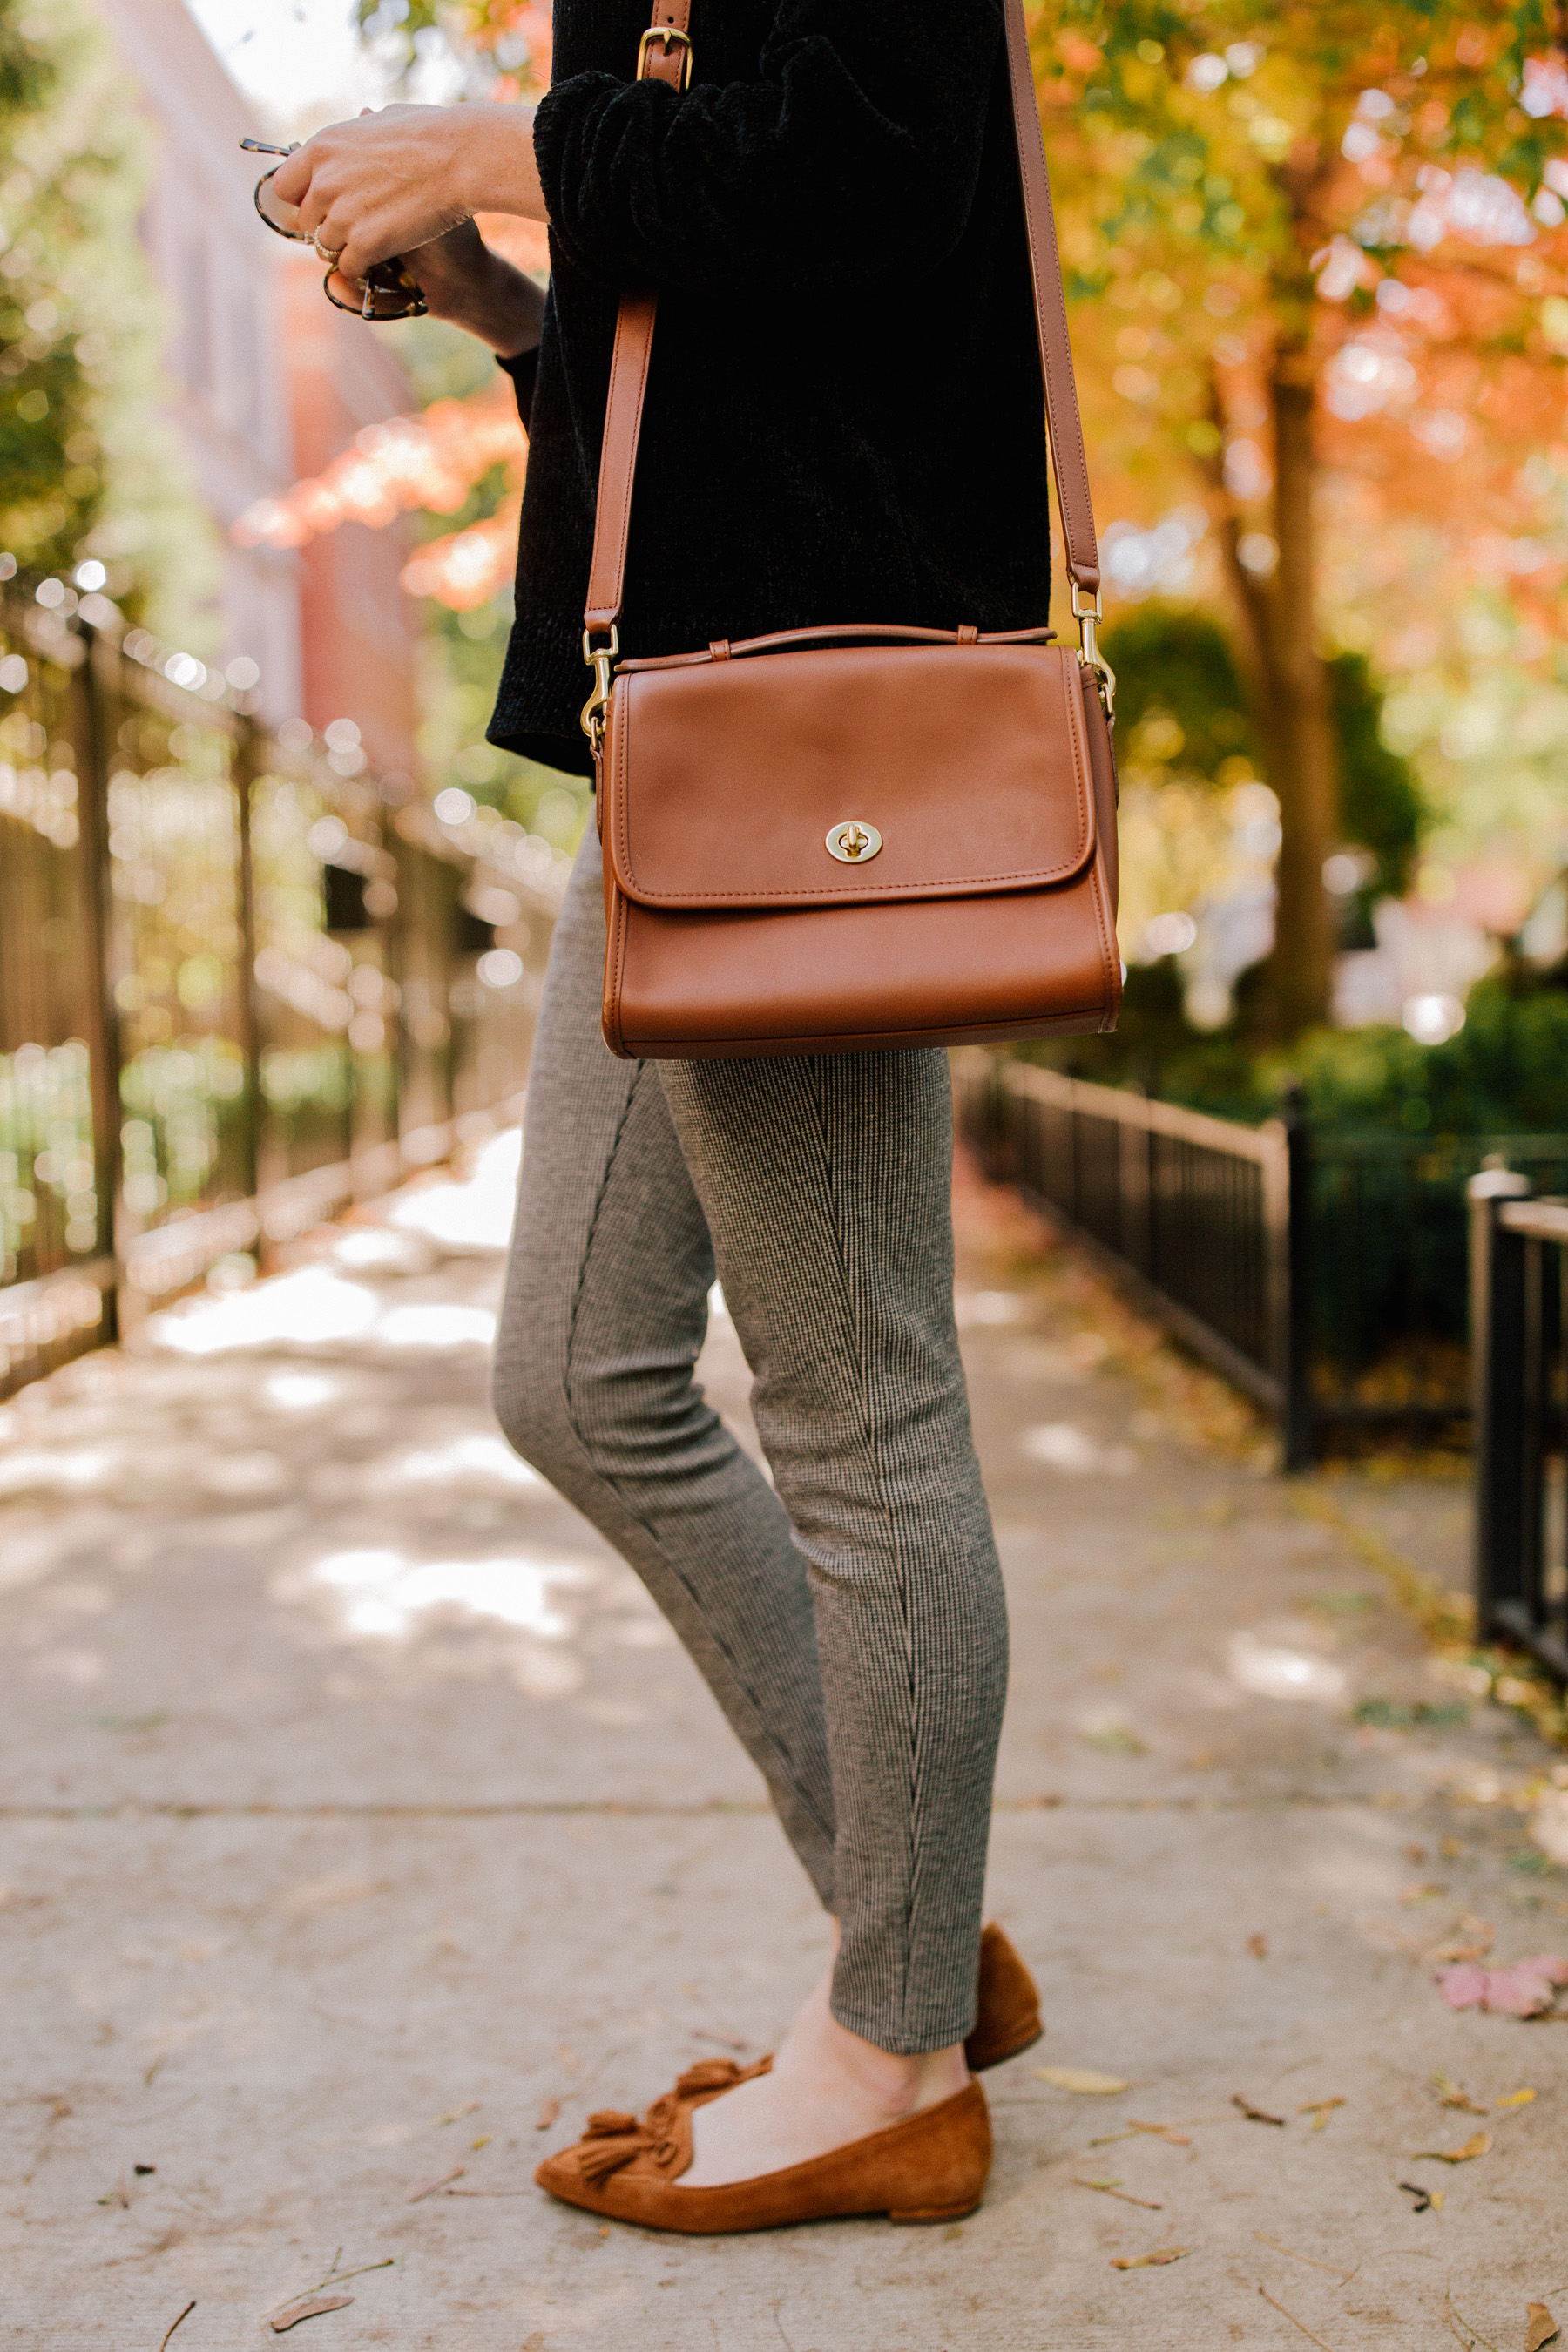 Staples You Need for Fall